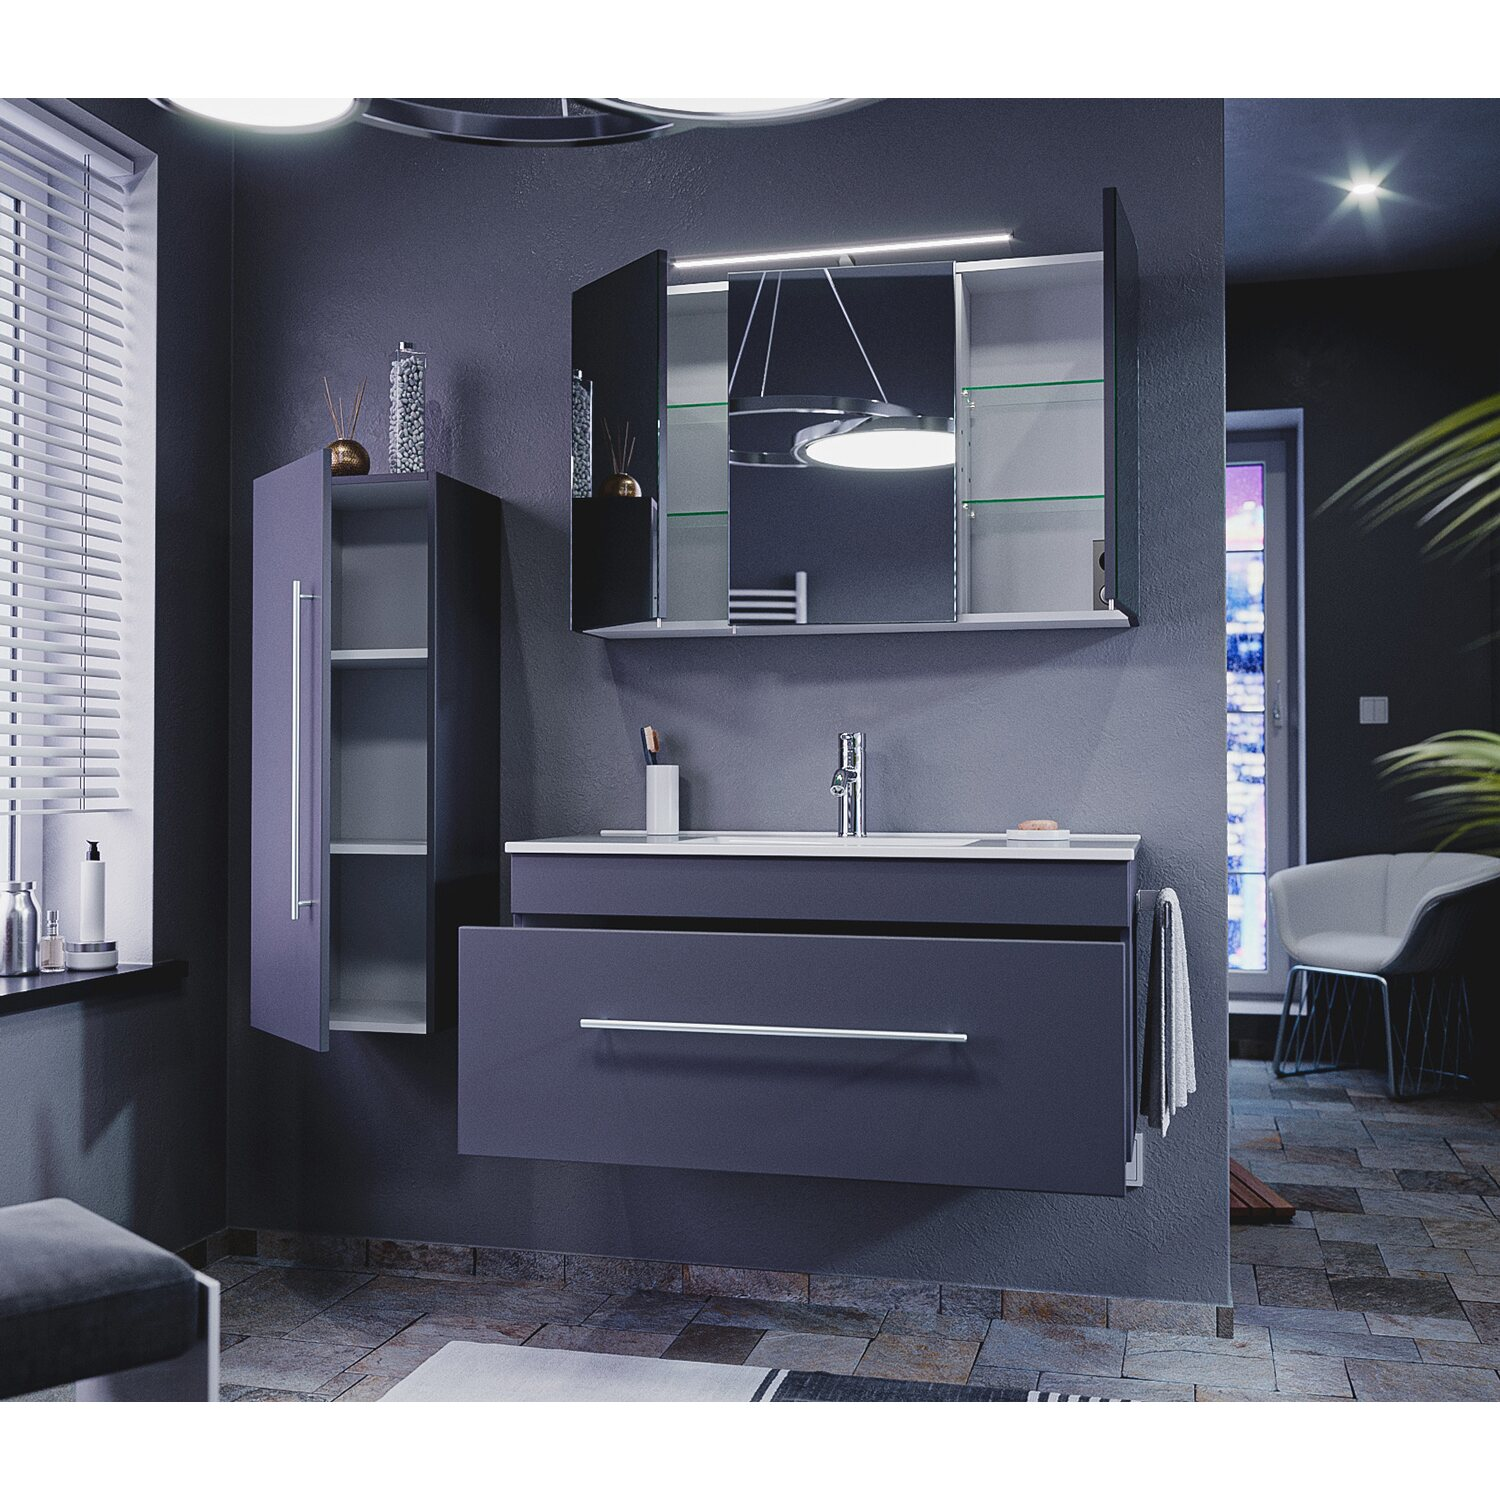 emotion badm bel komplett set pro 100 cm anthrazit. Black Bedroom Furniture Sets. Home Design Ideas